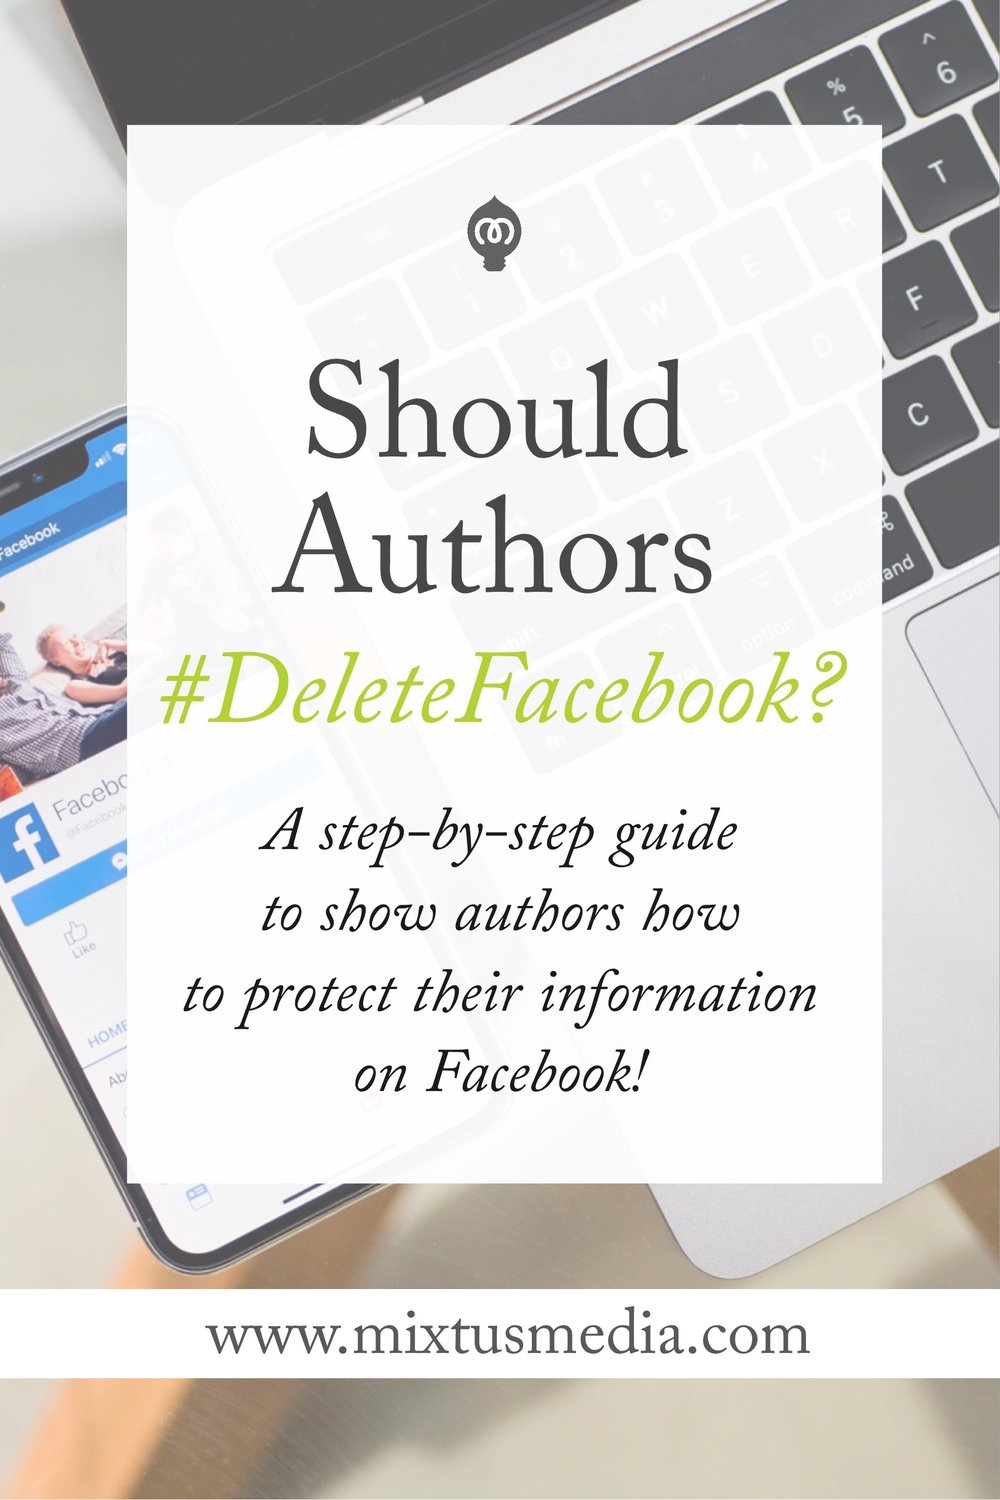 A step-by-step guide to show authors how to protect their information on Facebook!